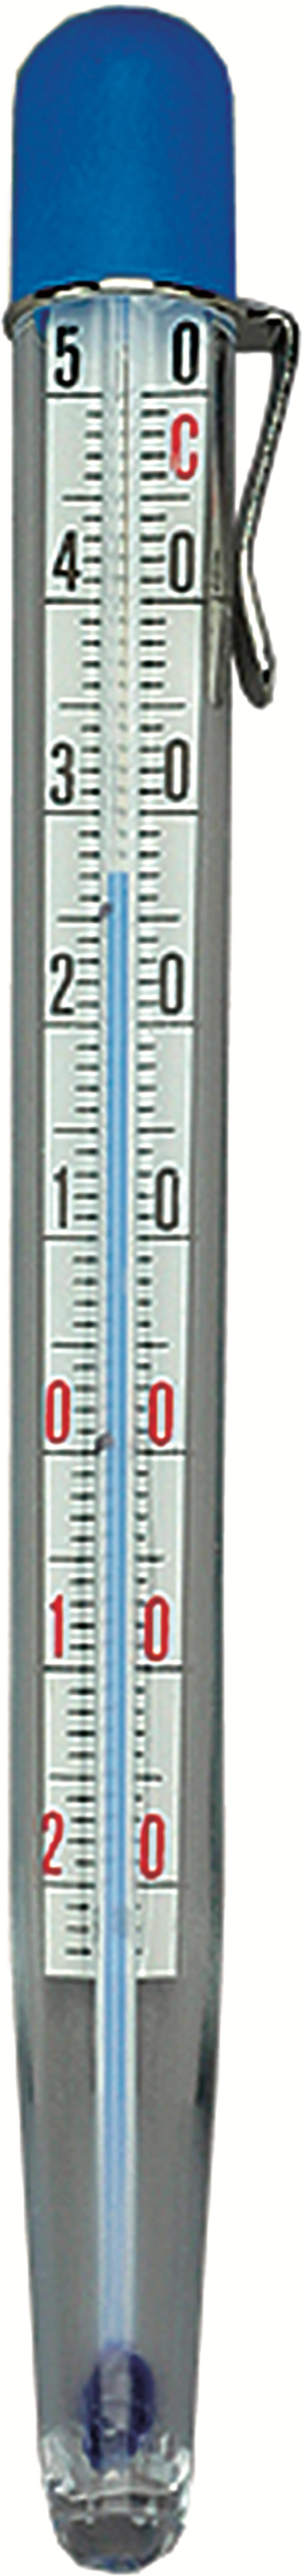 Thermometer 160004